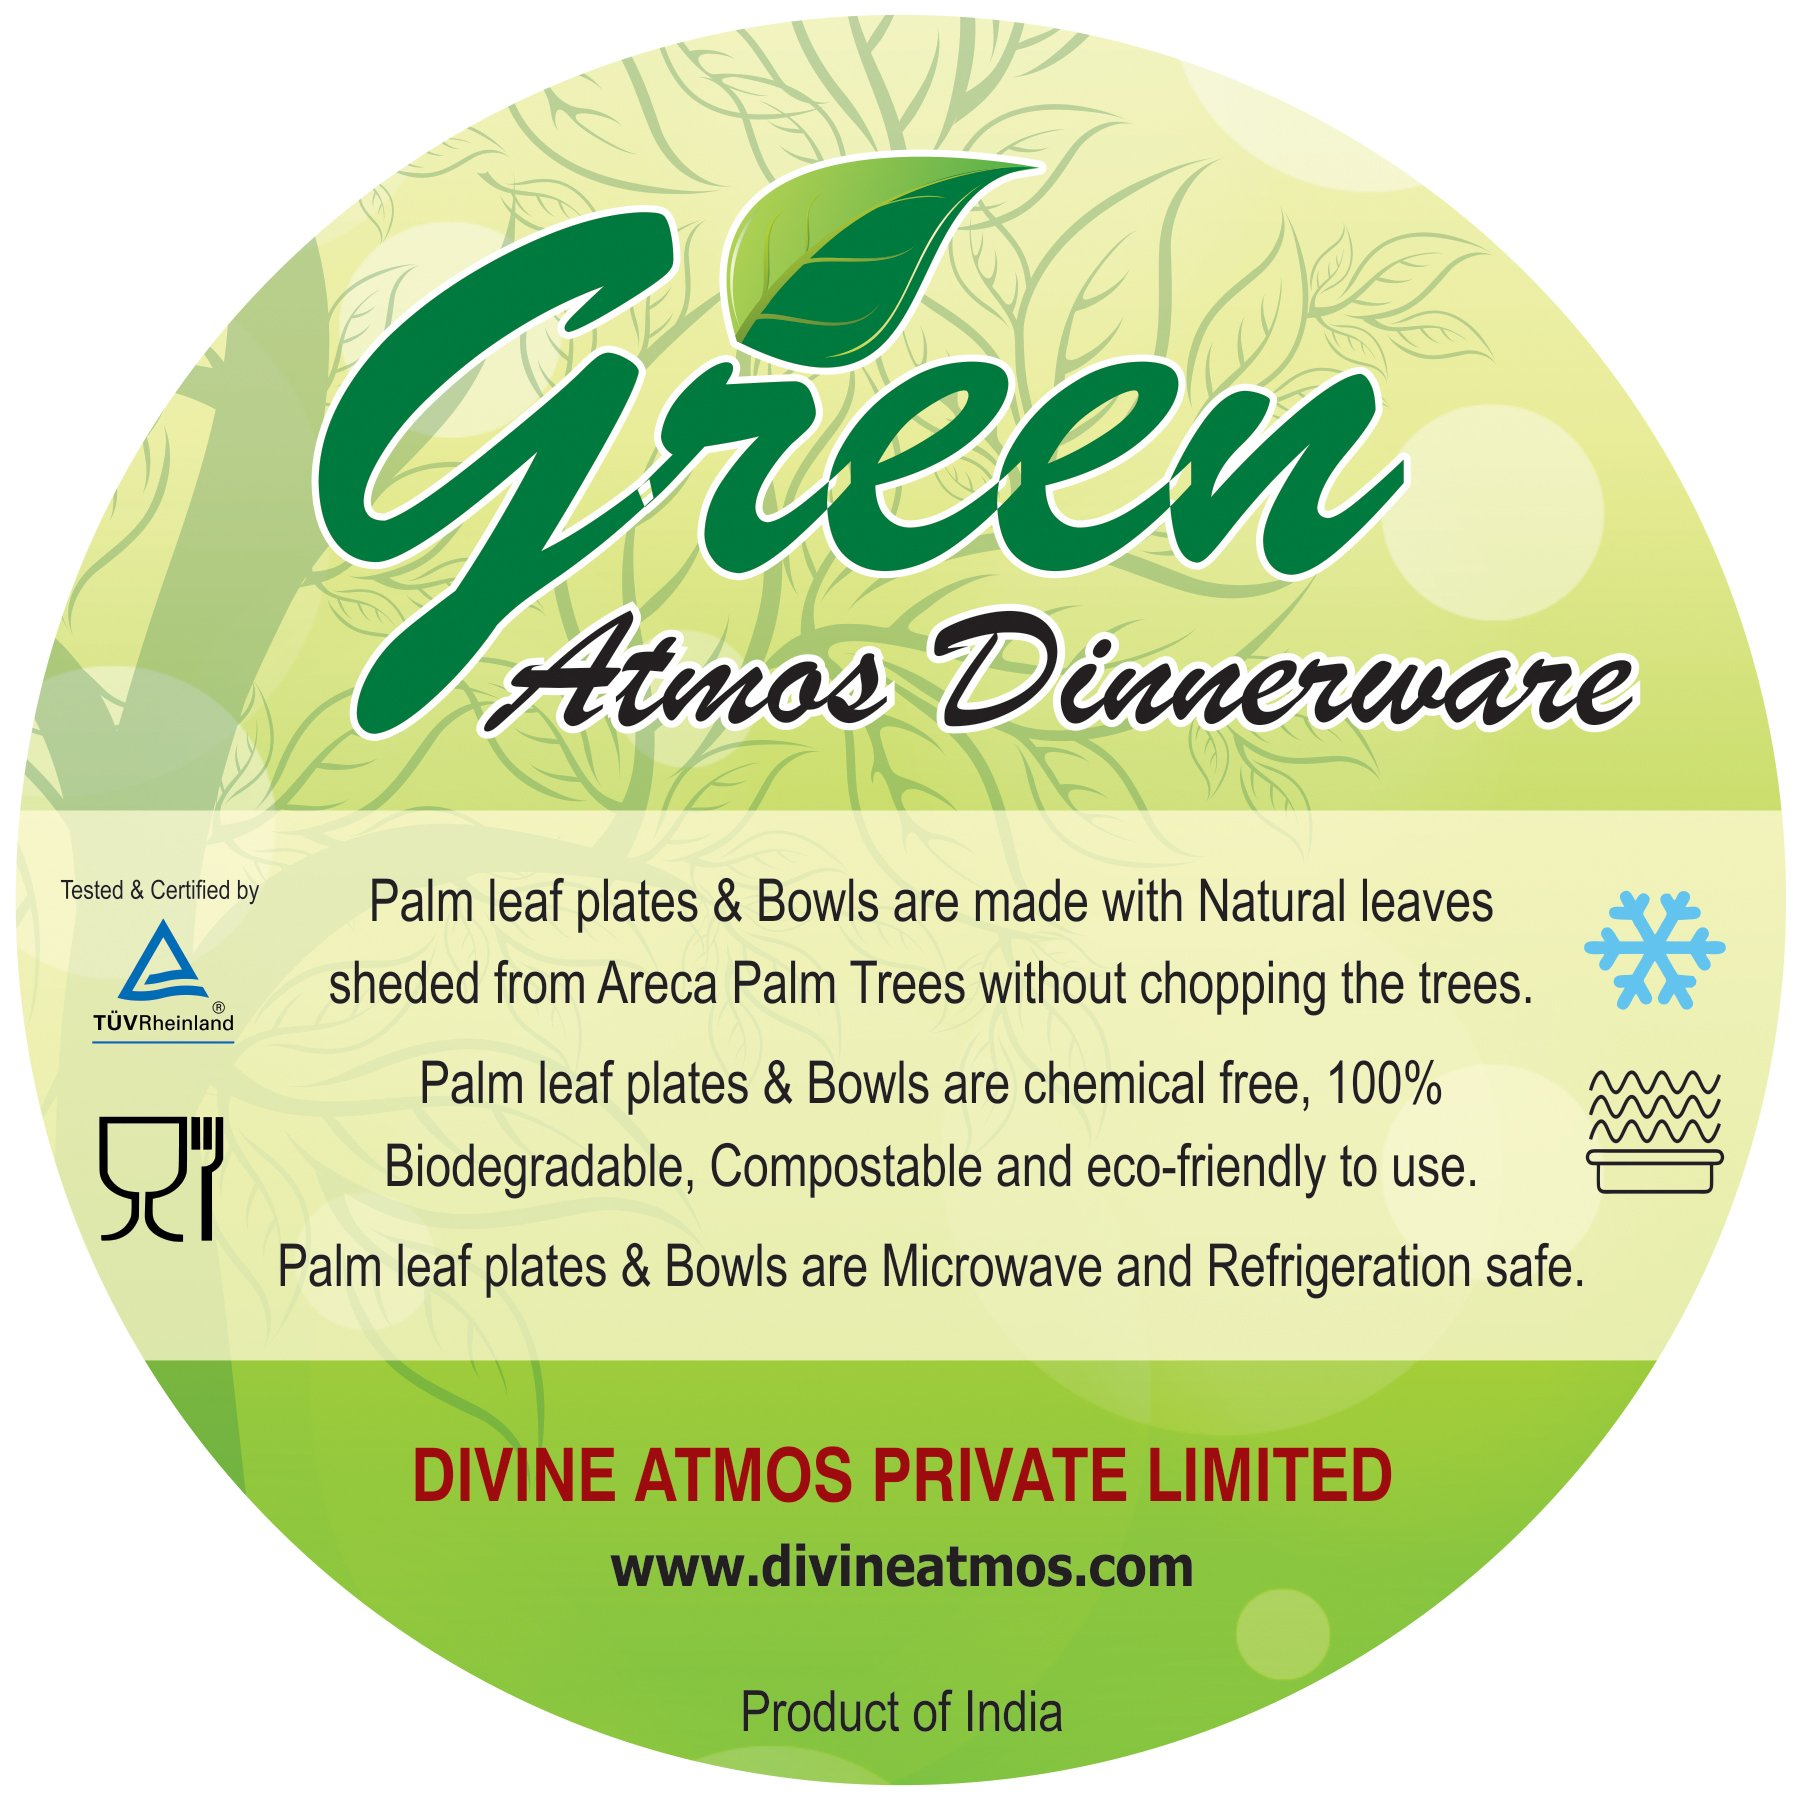 GREEN ATMOS 100 PACK - 6'' SQUARE TEA / DESSERT / SIDE PLATE BIODEGRADABLE, COMPOSTABLE AND ECO-FRIENDLY DISPOSABLE ARECA PALM LEAF PLATES